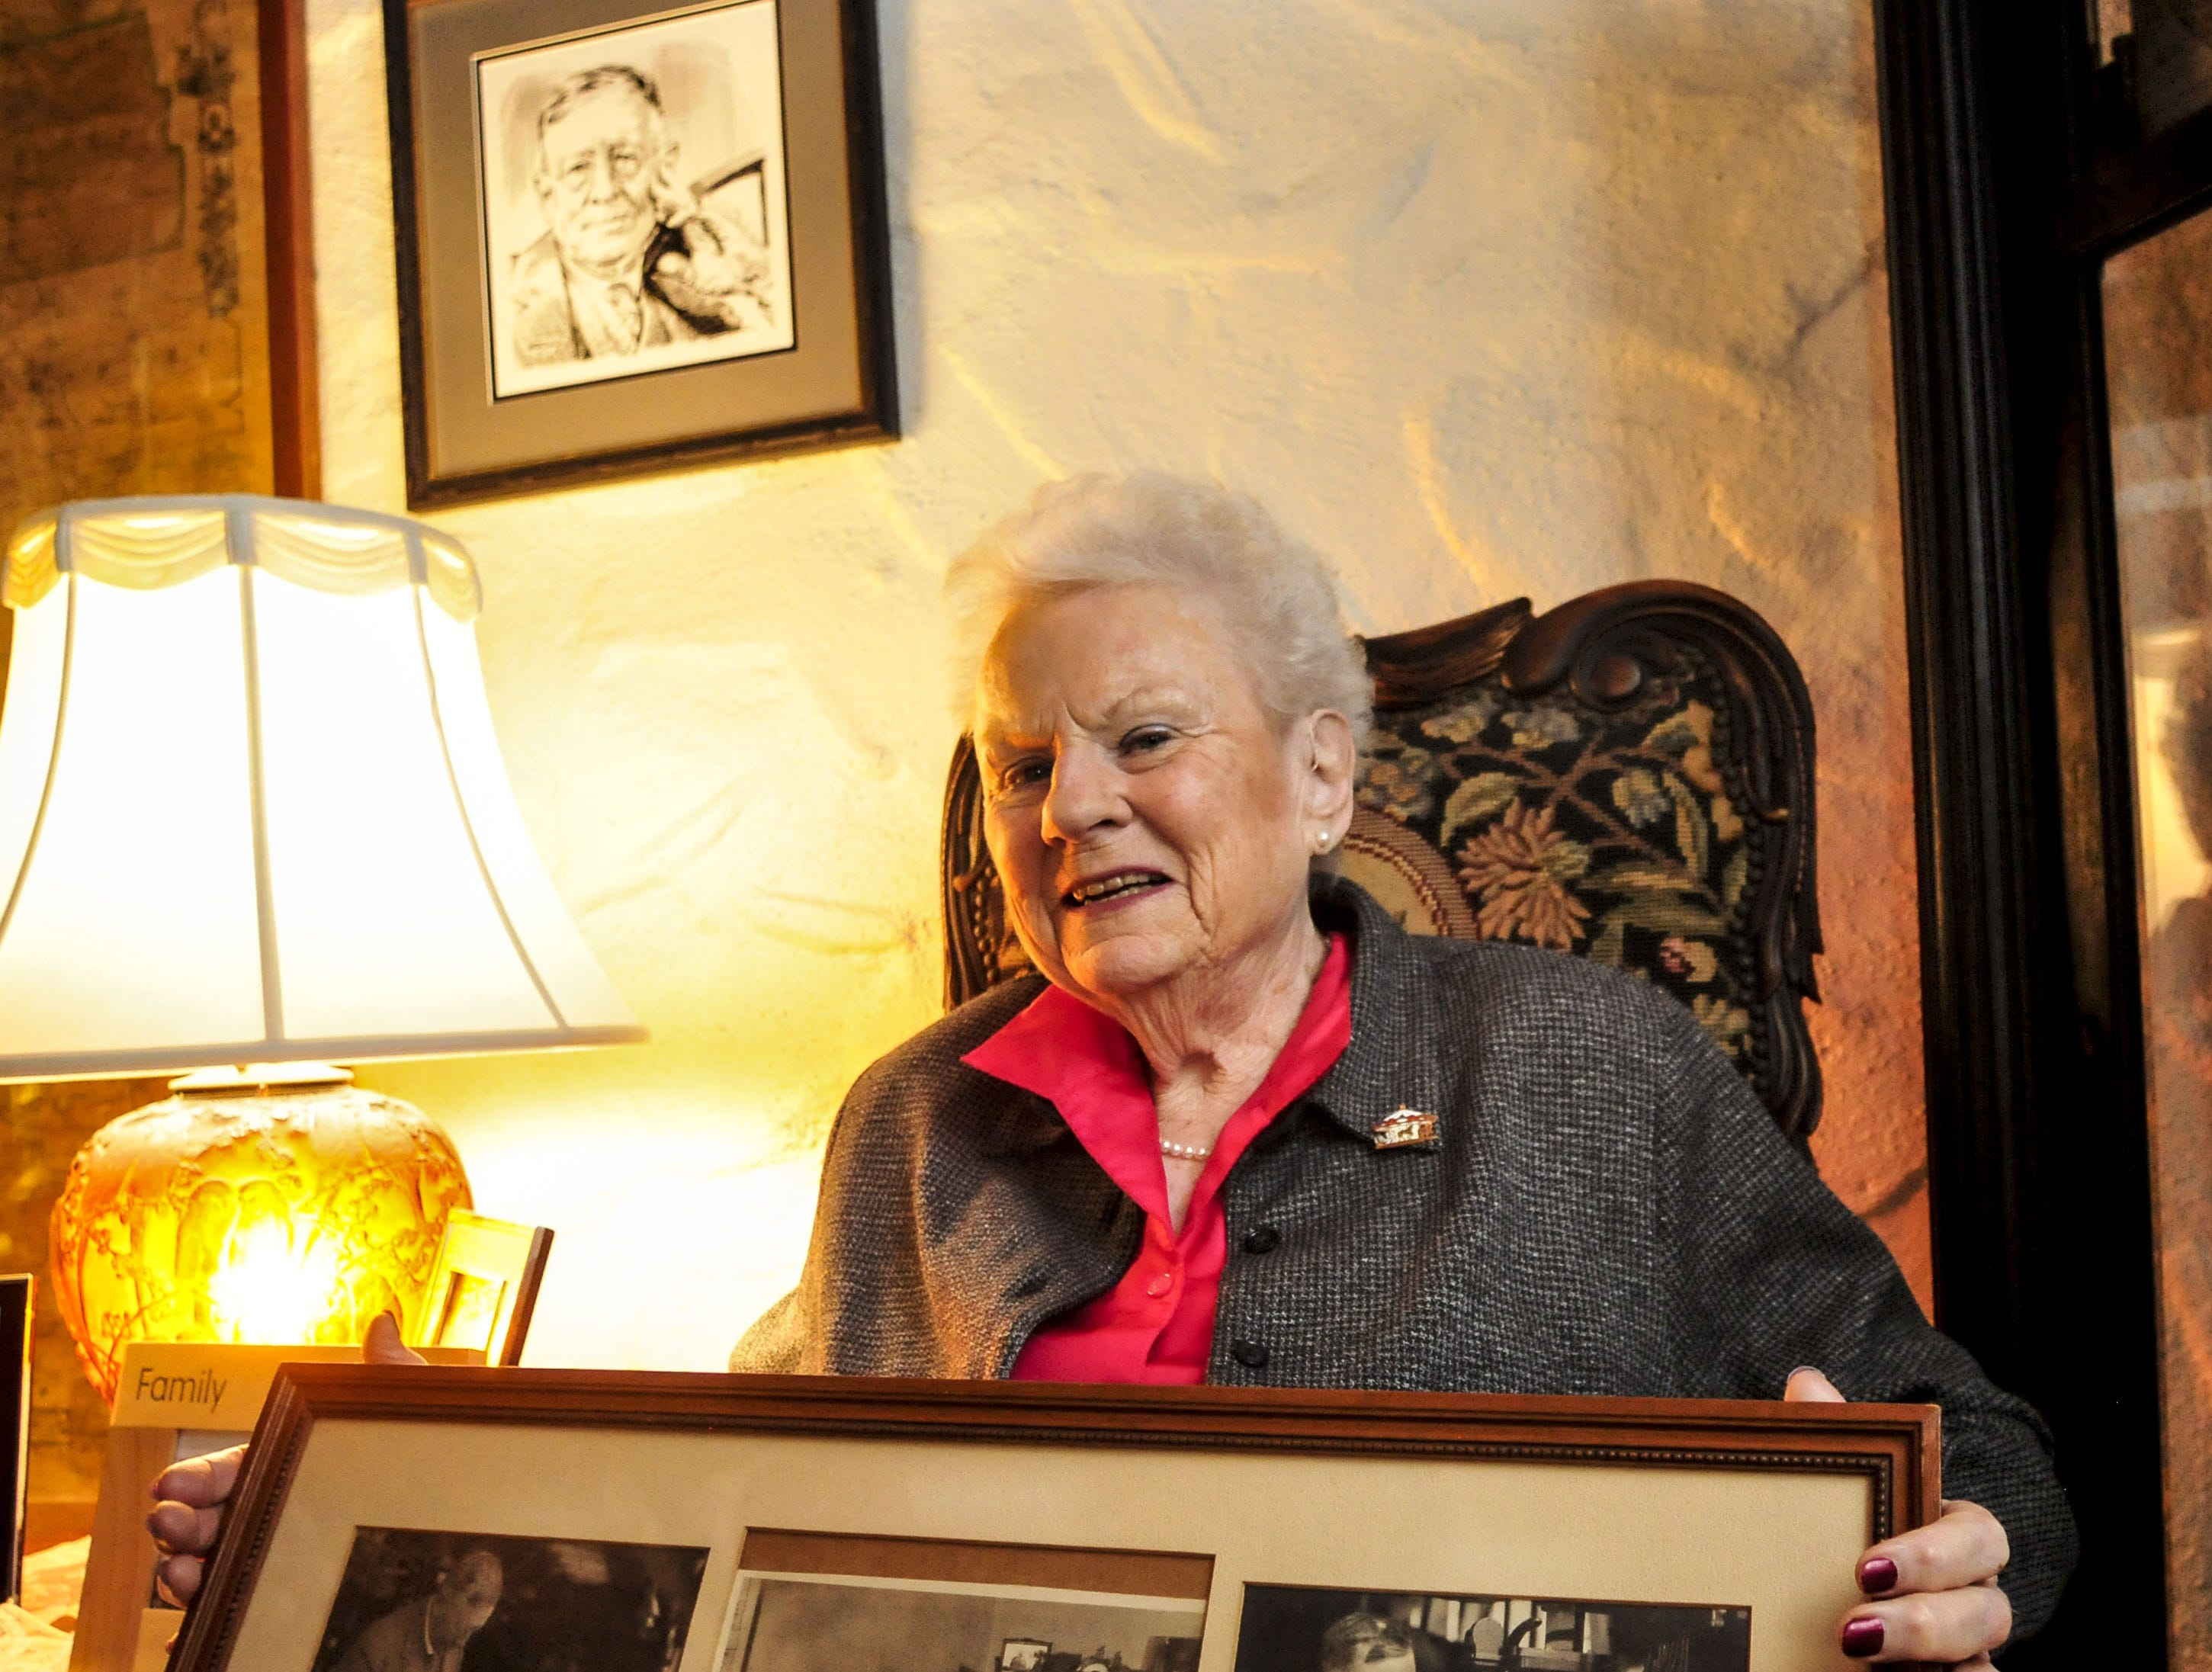 Sandra Scanlon, granddaughter of  Broome County industrialist George F. Johnson, sits in one of his antique chairs holding photos of him at her Windsor home. Scanlon was selected as grand marshal of Endicott's 2013 holiday parade.